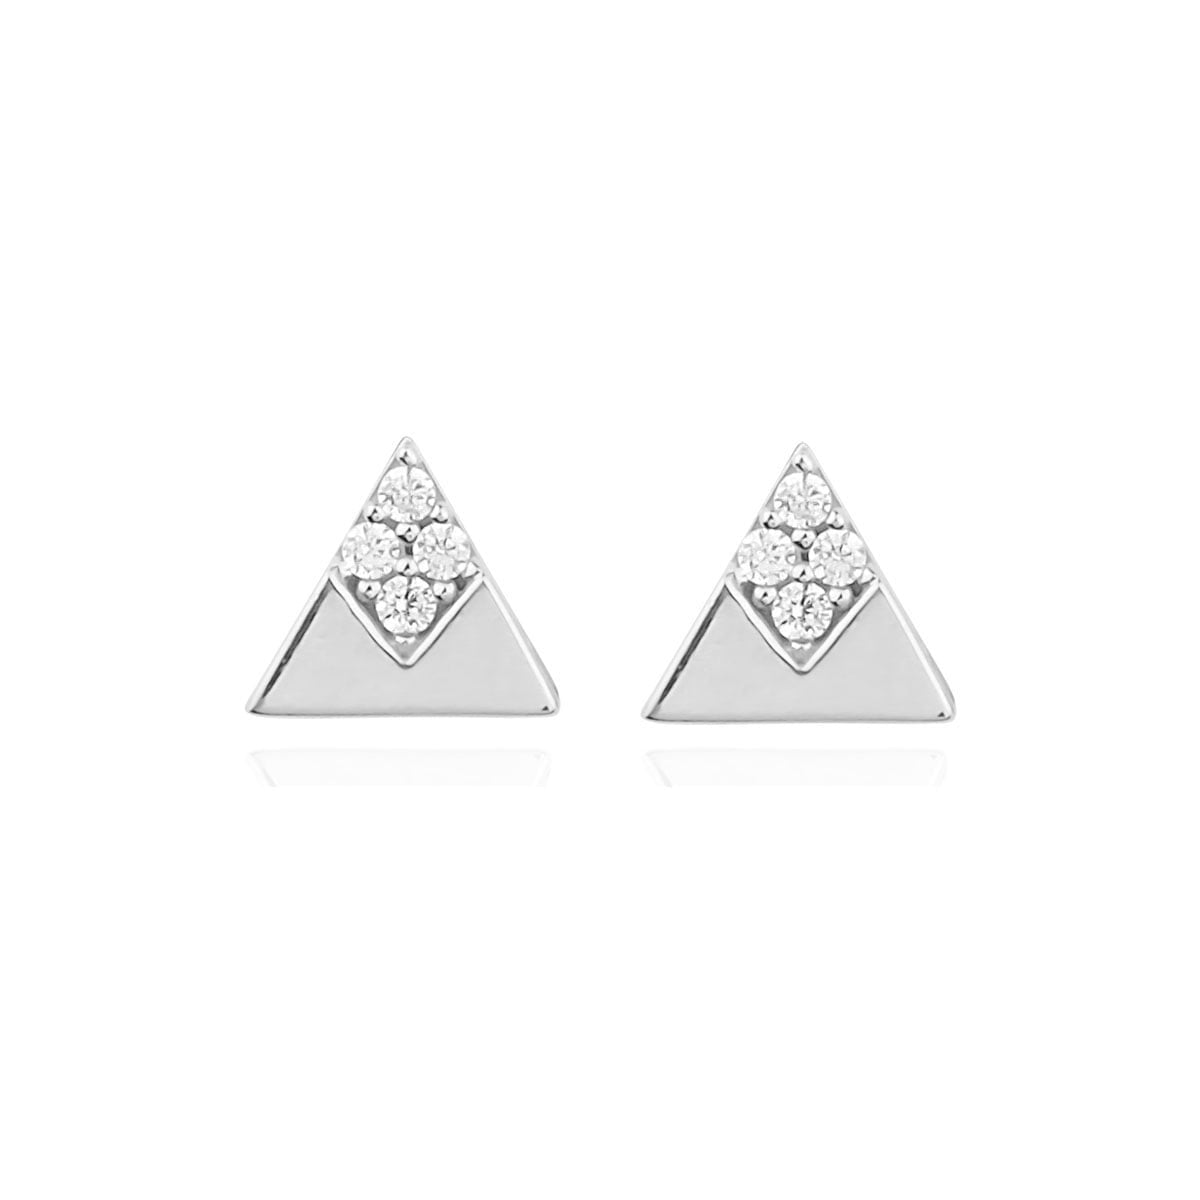 gia-triangle-18ct-white-gold-earrings